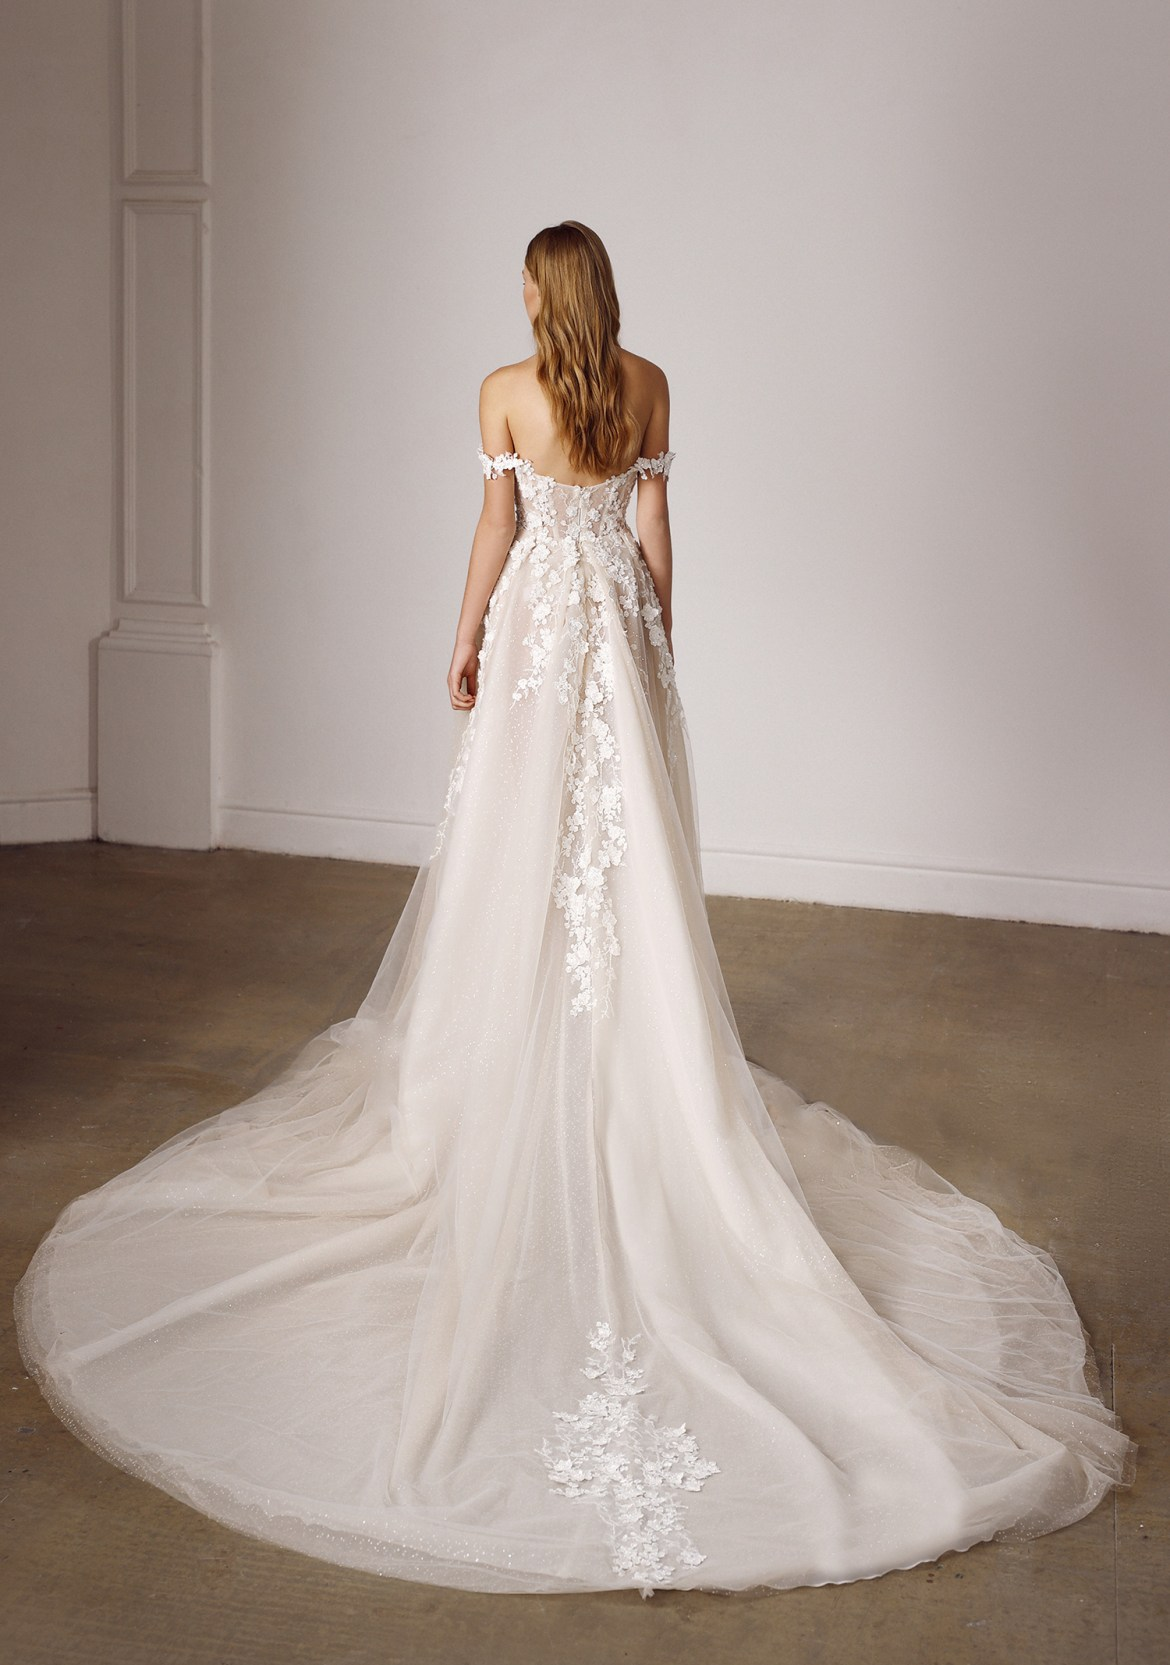 Galia Lahav Spring 2022 Bridal Collection. www.theweddingnotebook.com